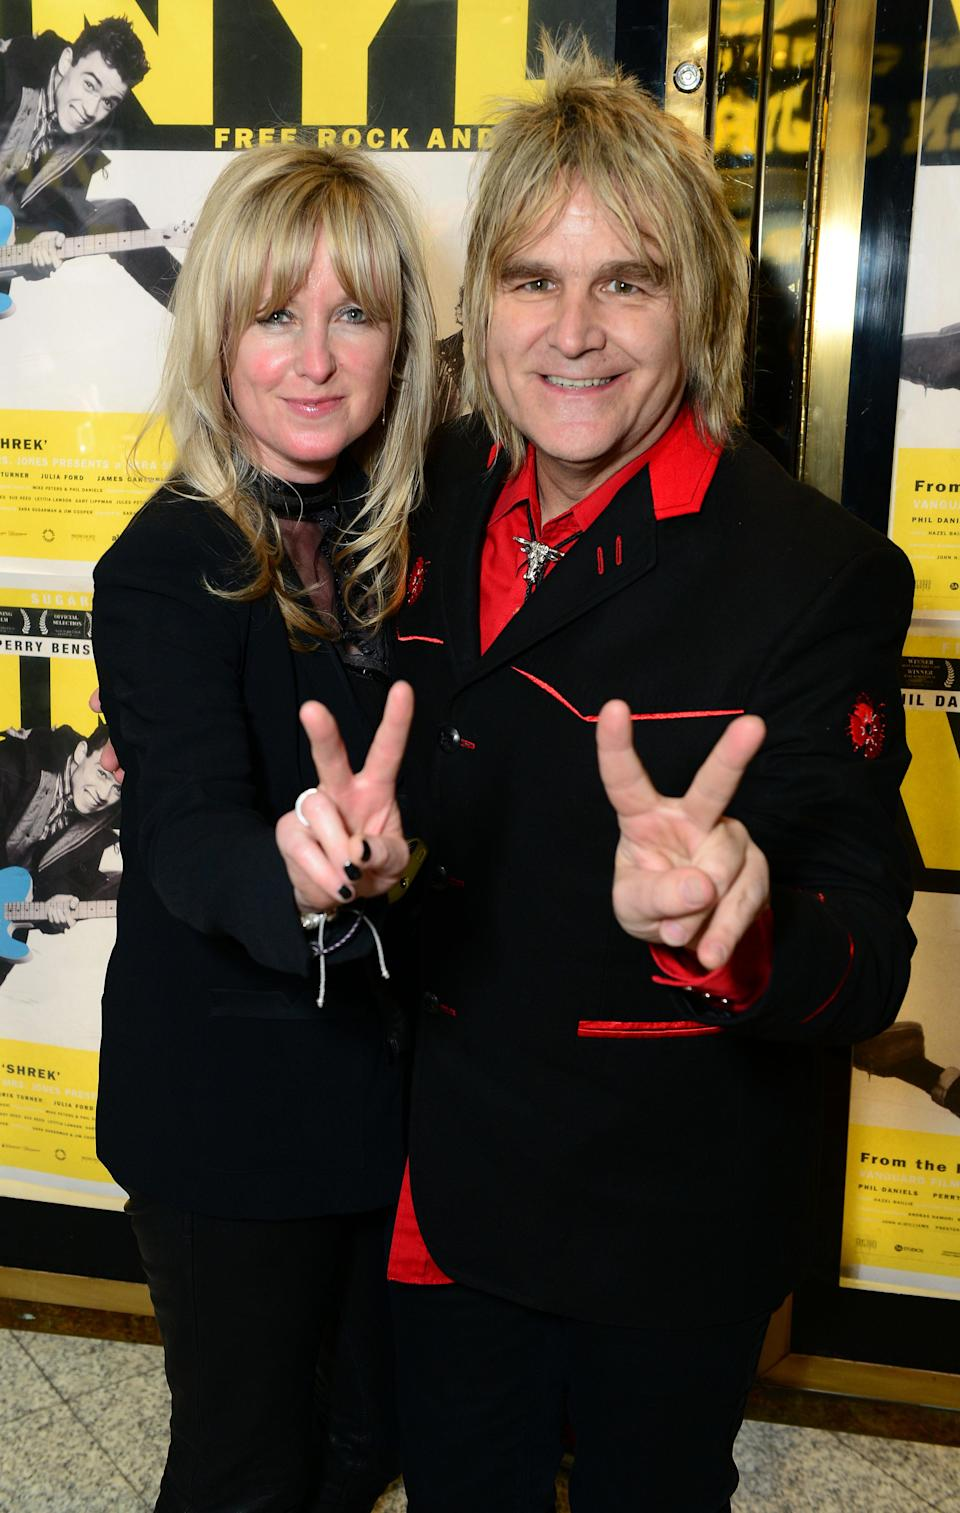 Mike and Jules Peters. (Photo: Jon Furniss/Invision/AP)